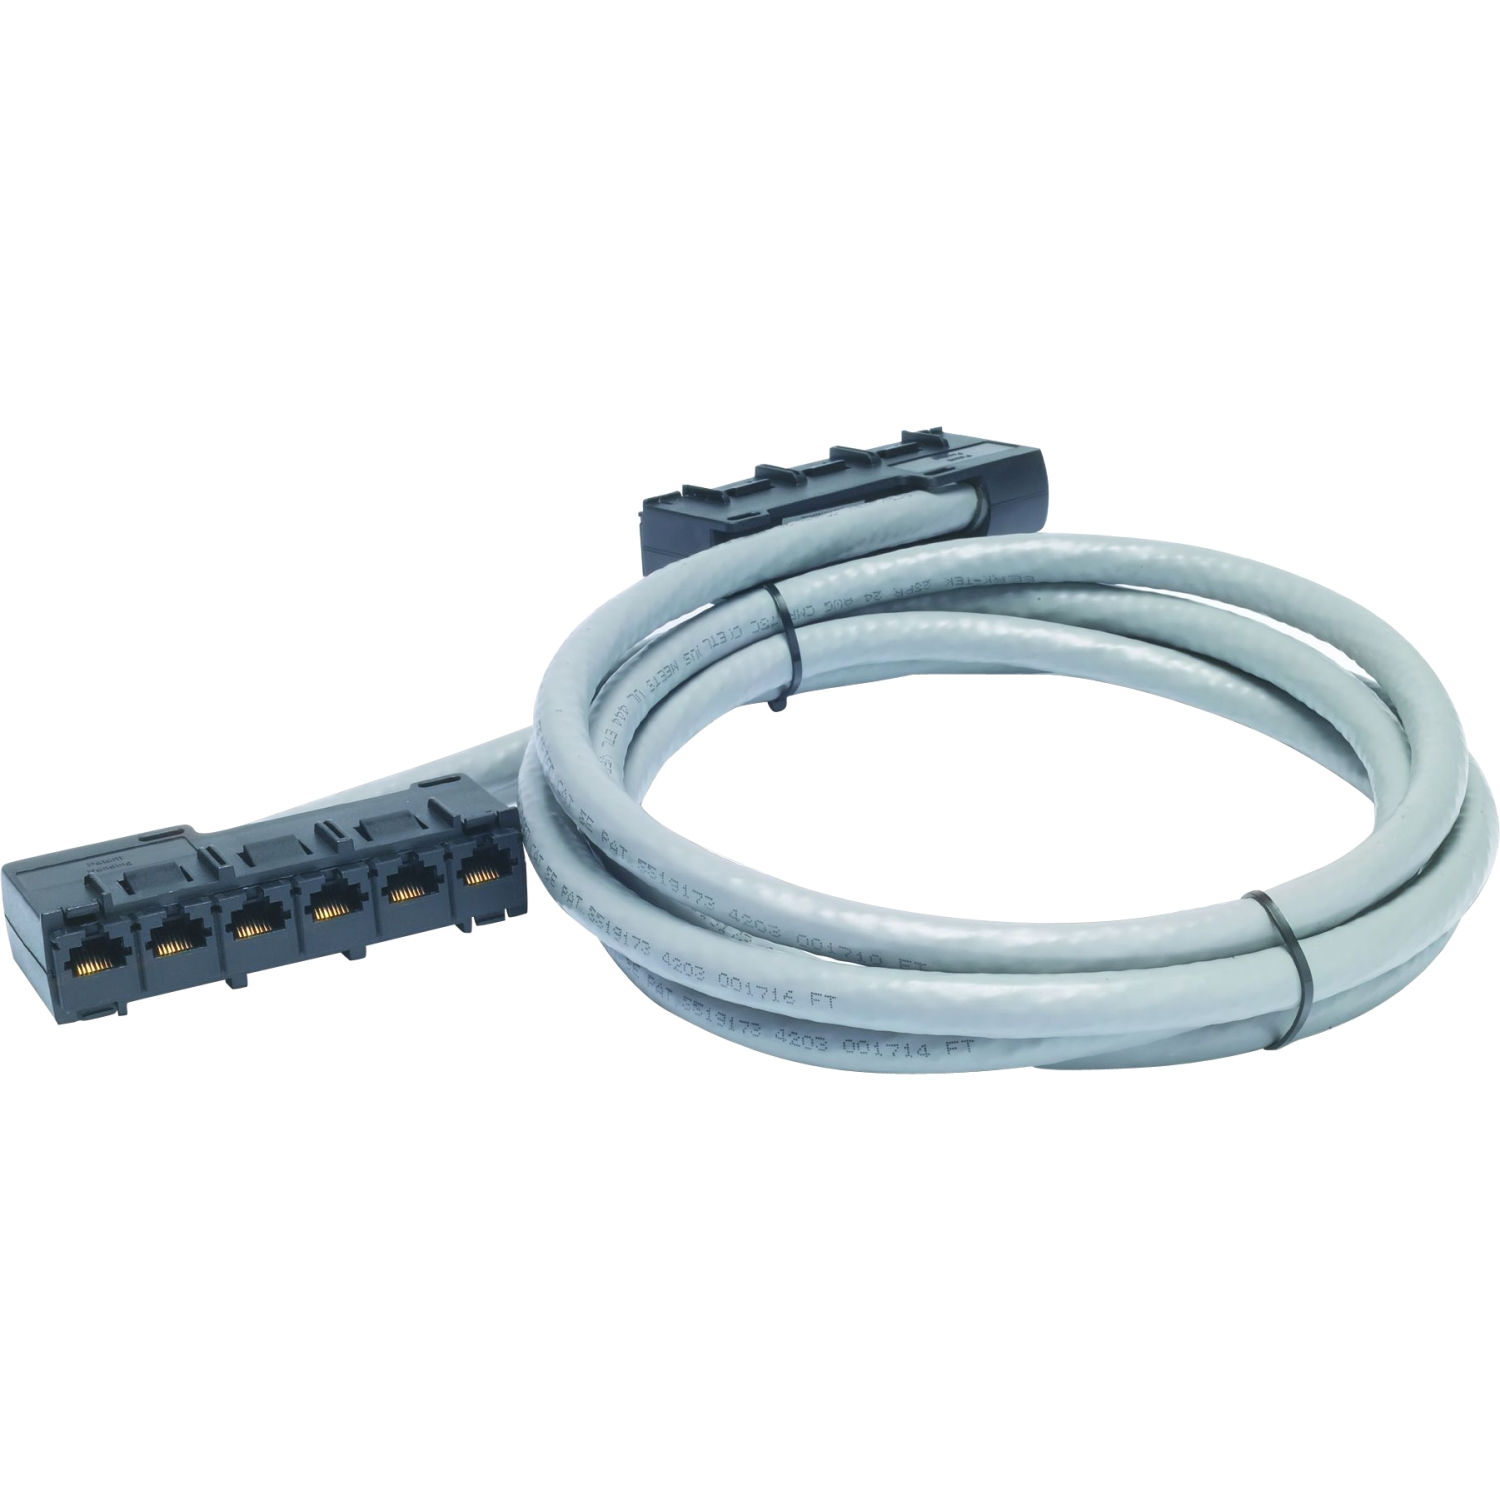 Data Distribution Cable - Network cable - RJ-45 (F) to RJ-45 (F) - 31 ft - UTP - CAT 5e - gray